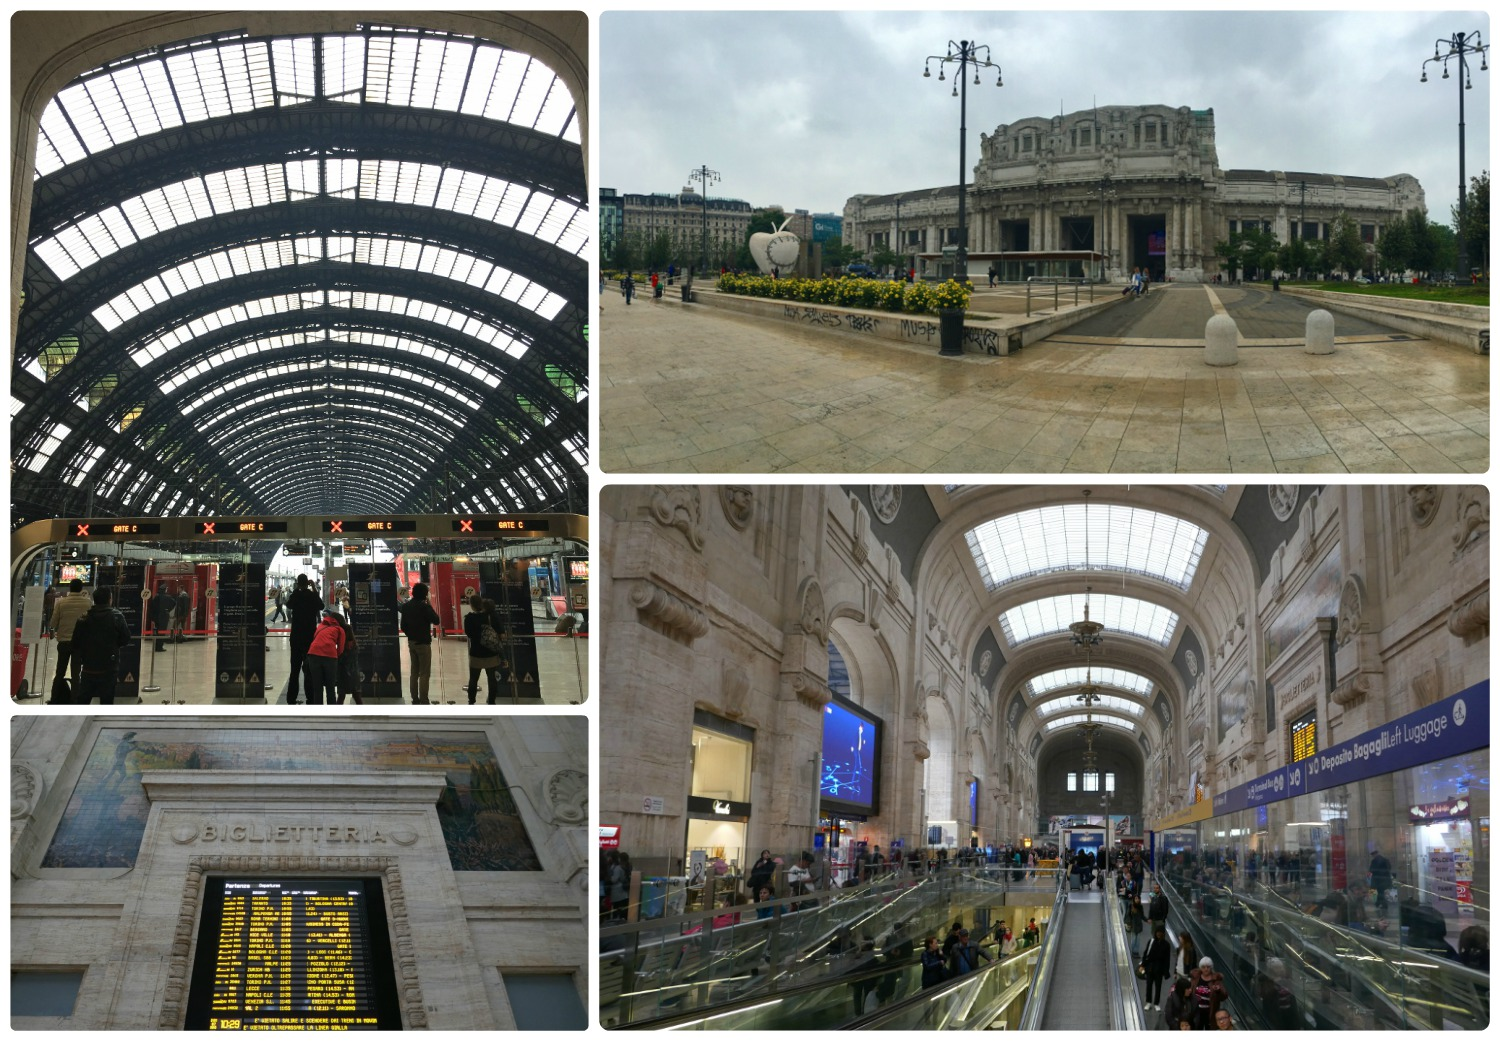 All images are of Milano Centrale (Milan train station). Clockwise (from the top): Entrance to the platforms within the station, the front exterior of the train station, the interior of the busy train station, the digital board of trains-times-platforms.